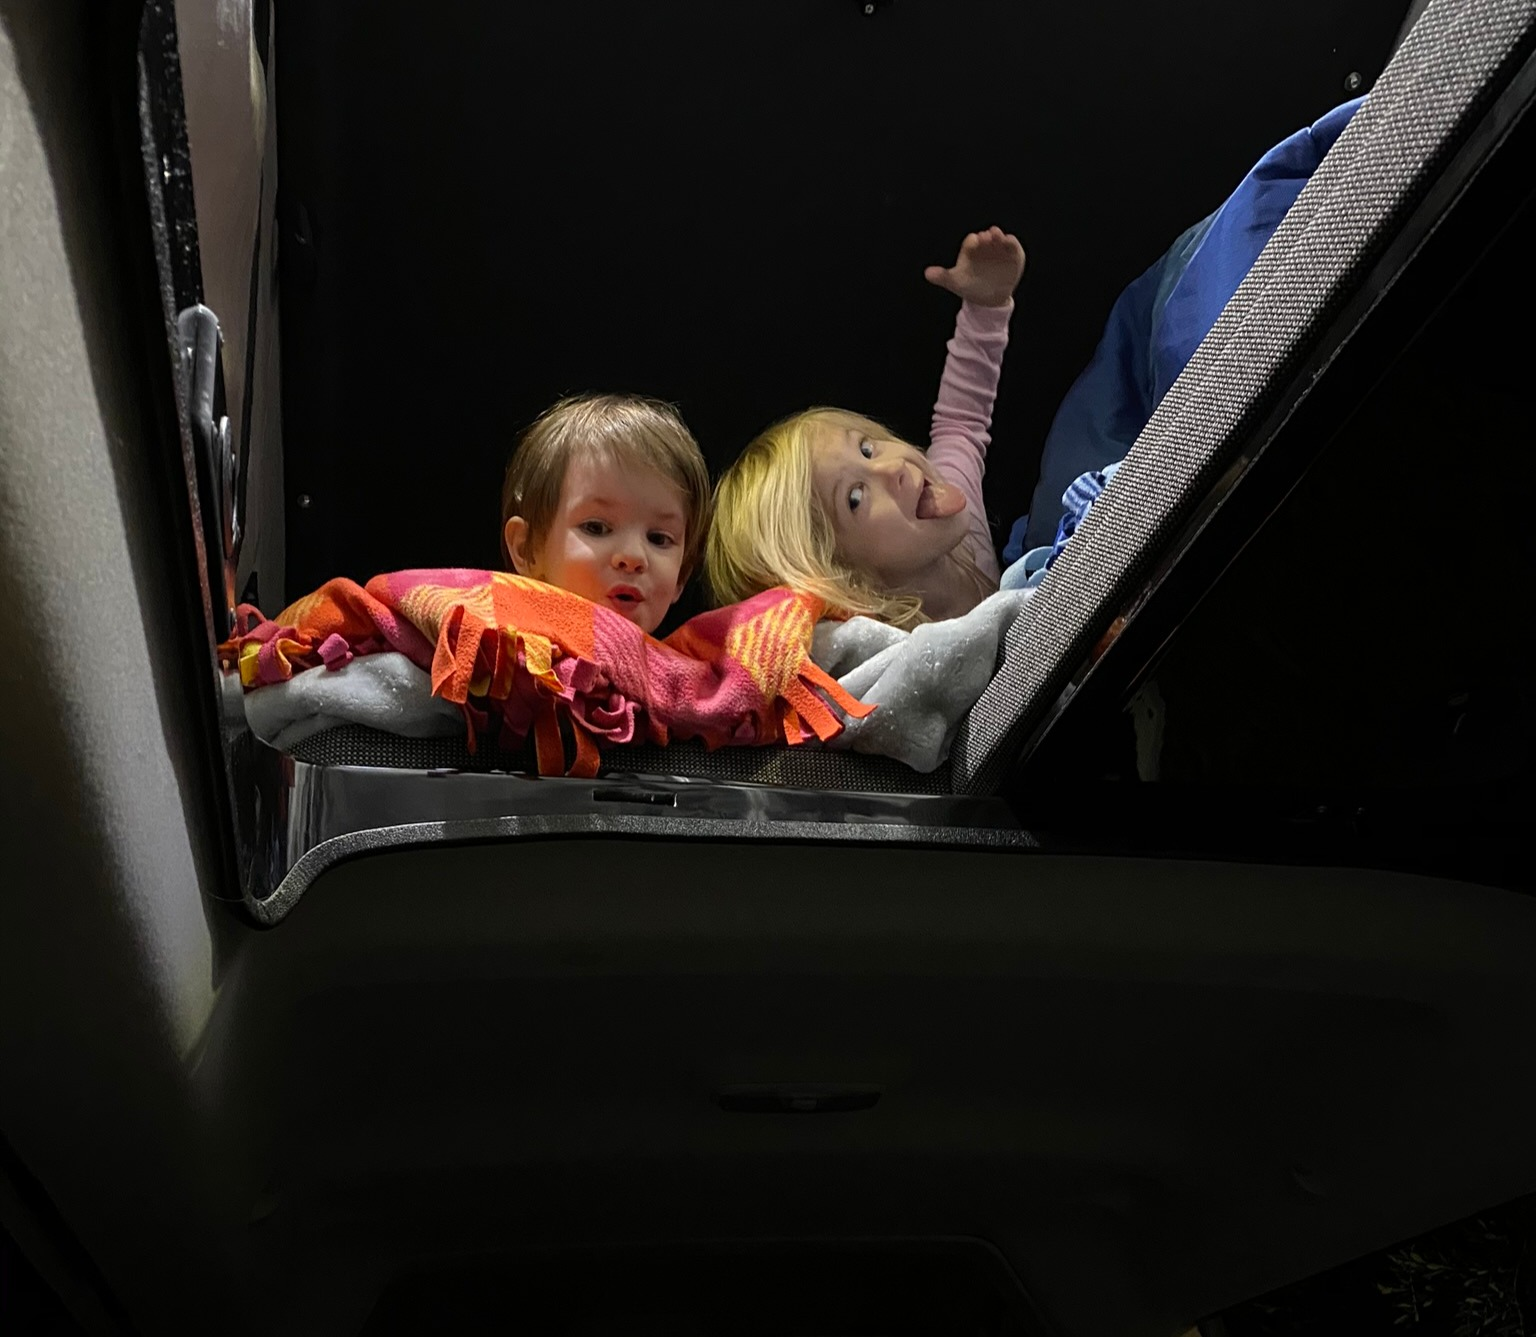 Kid approved :P. Van is great for families up to 5.. Ford TransitConnect 2016